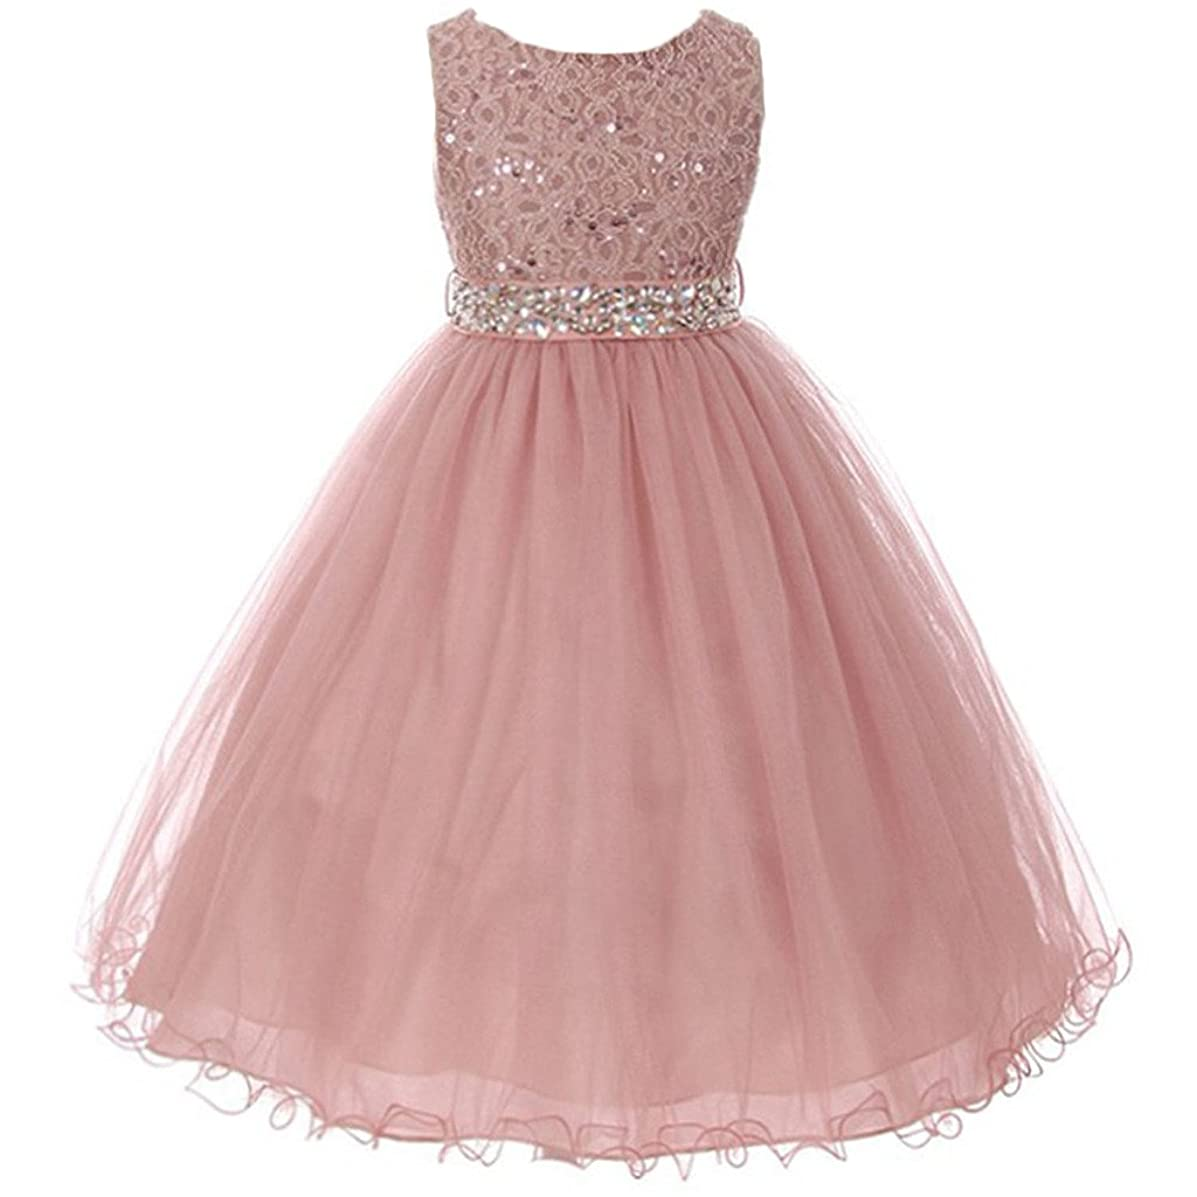 AkiDress Sequin Lace Top with Tulle Bottom Flower Girl Dress